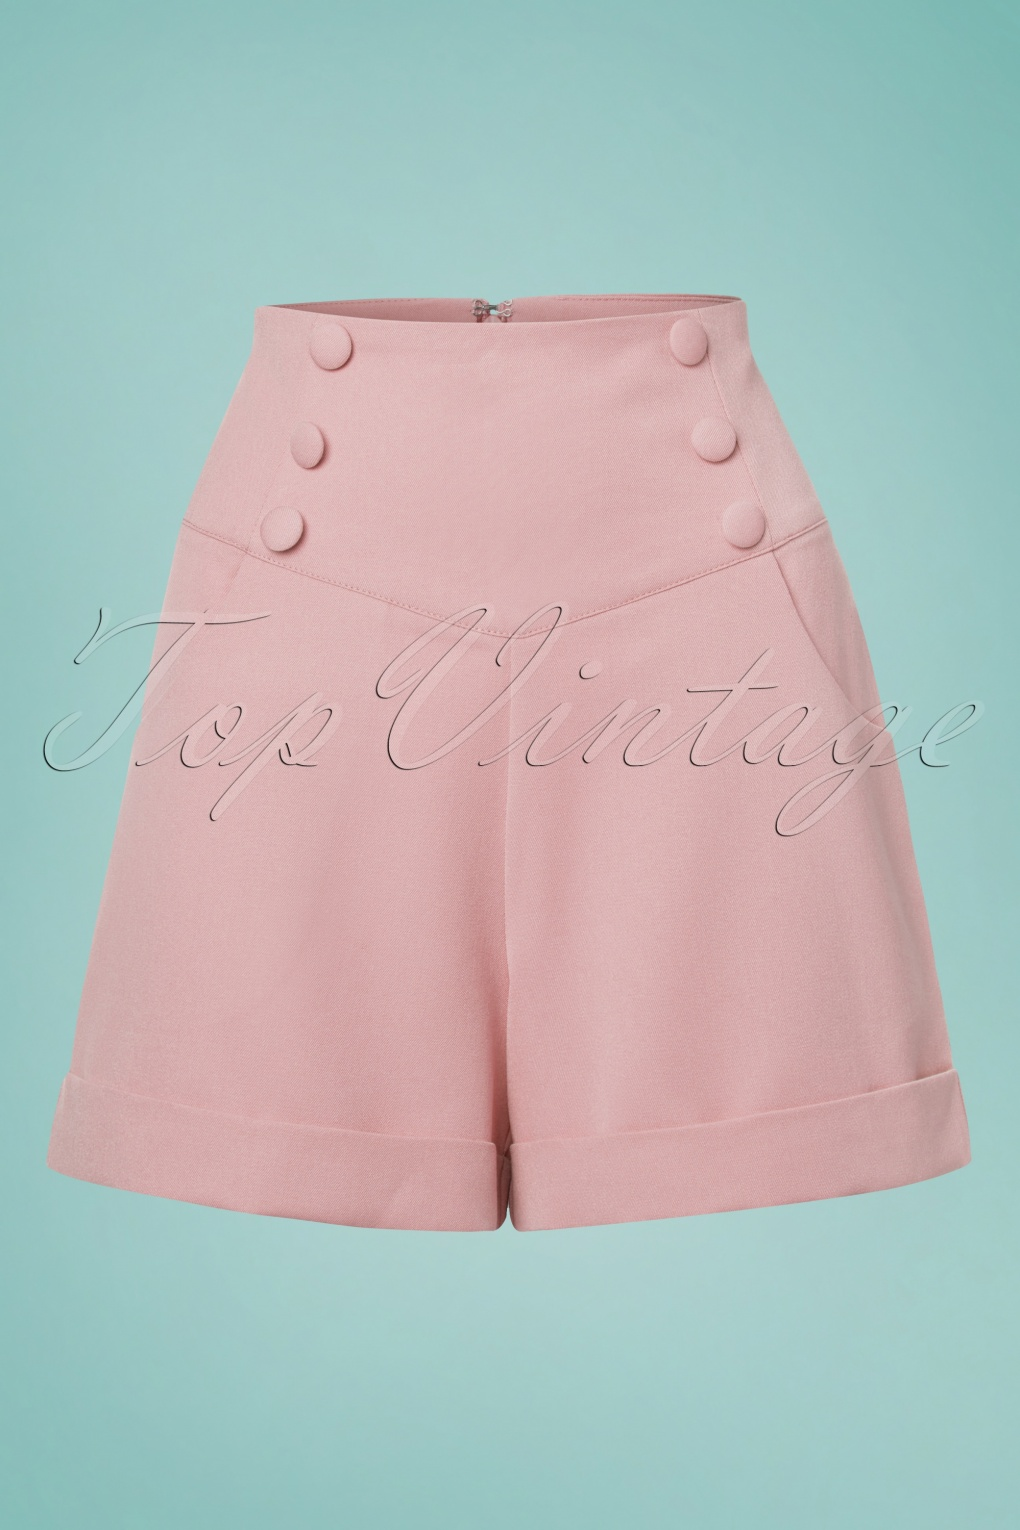 Sailor Dresses, Nautical Dress, Pin Up & WW2 Dresses 50s Cute As A Button Shorts in Powder Pink £33.53 AT vintagedancer.com